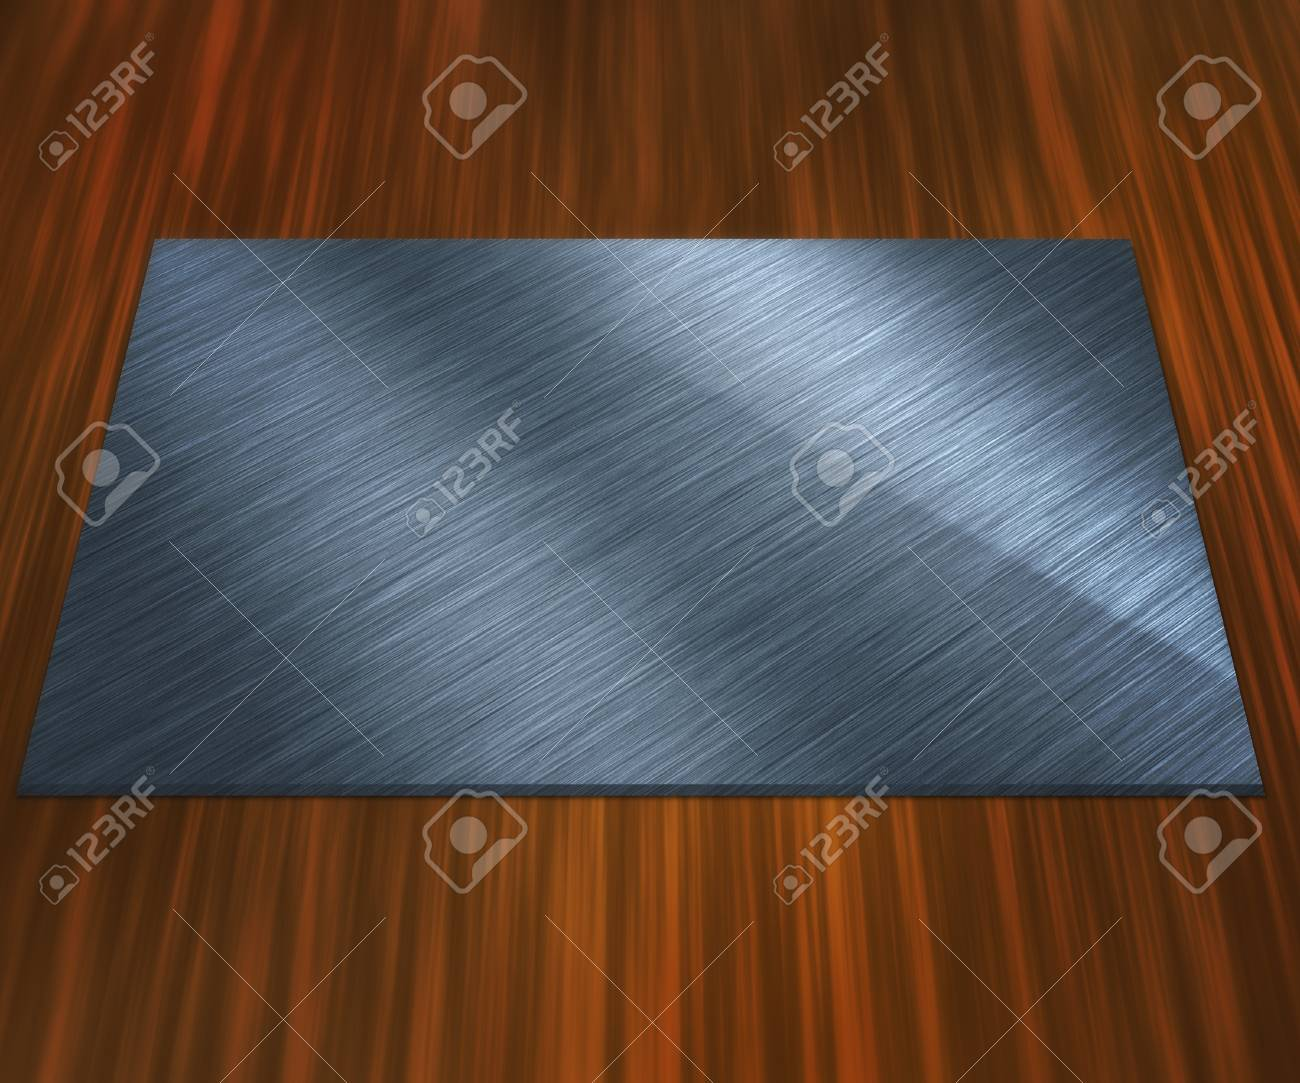 Blank Silver Plate Stock Photo - 13698757